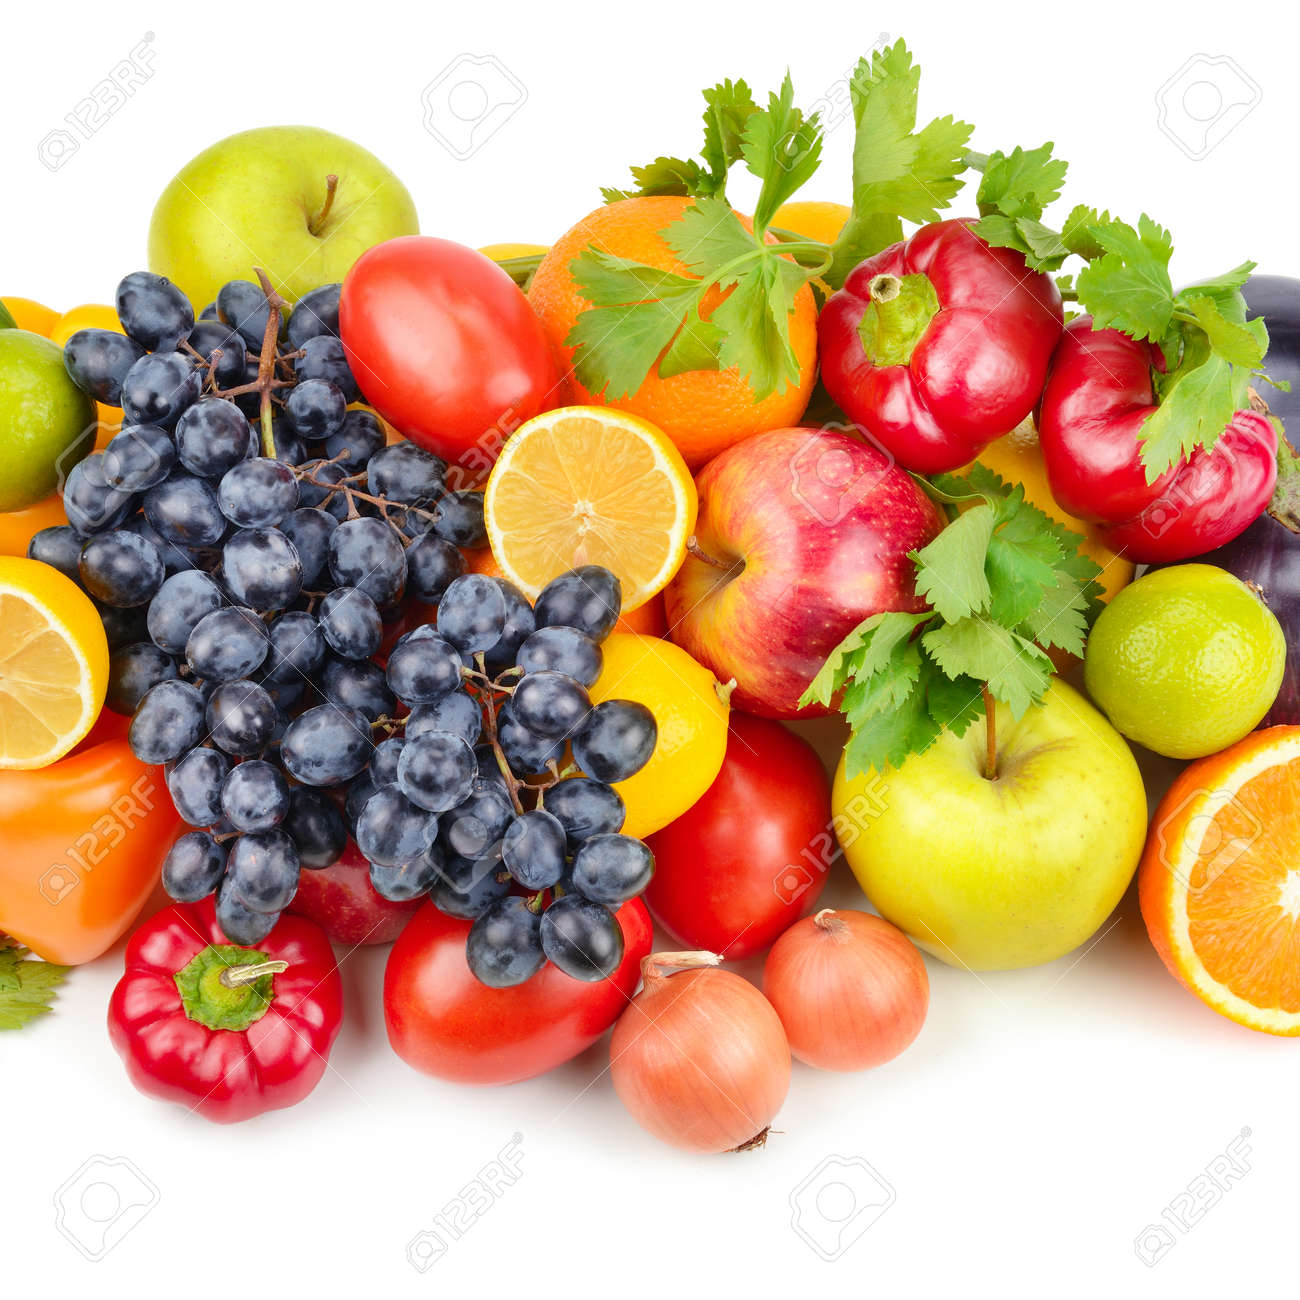 Assortment of fruits and vegetables isolated on white background. - 146759148